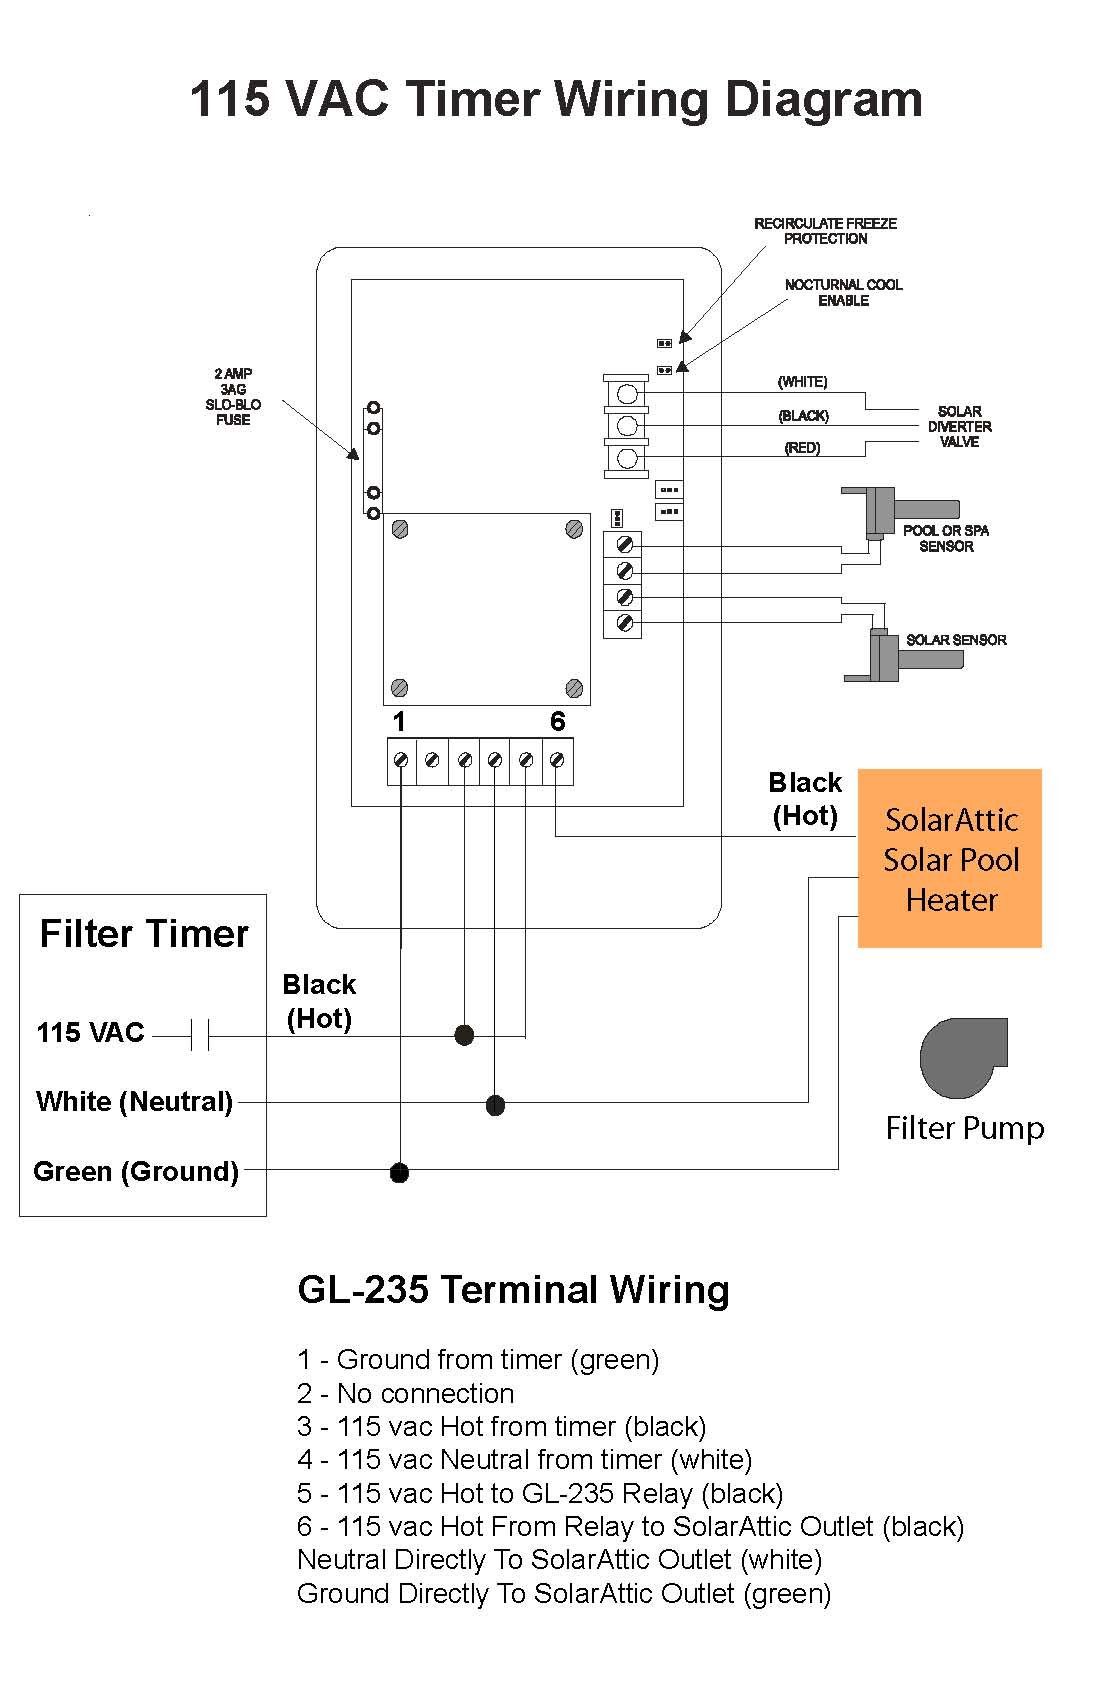 hight resolution of 4 wire timer diagram wiring library woods timer wiring diagram 115 vac timer wiring diagram